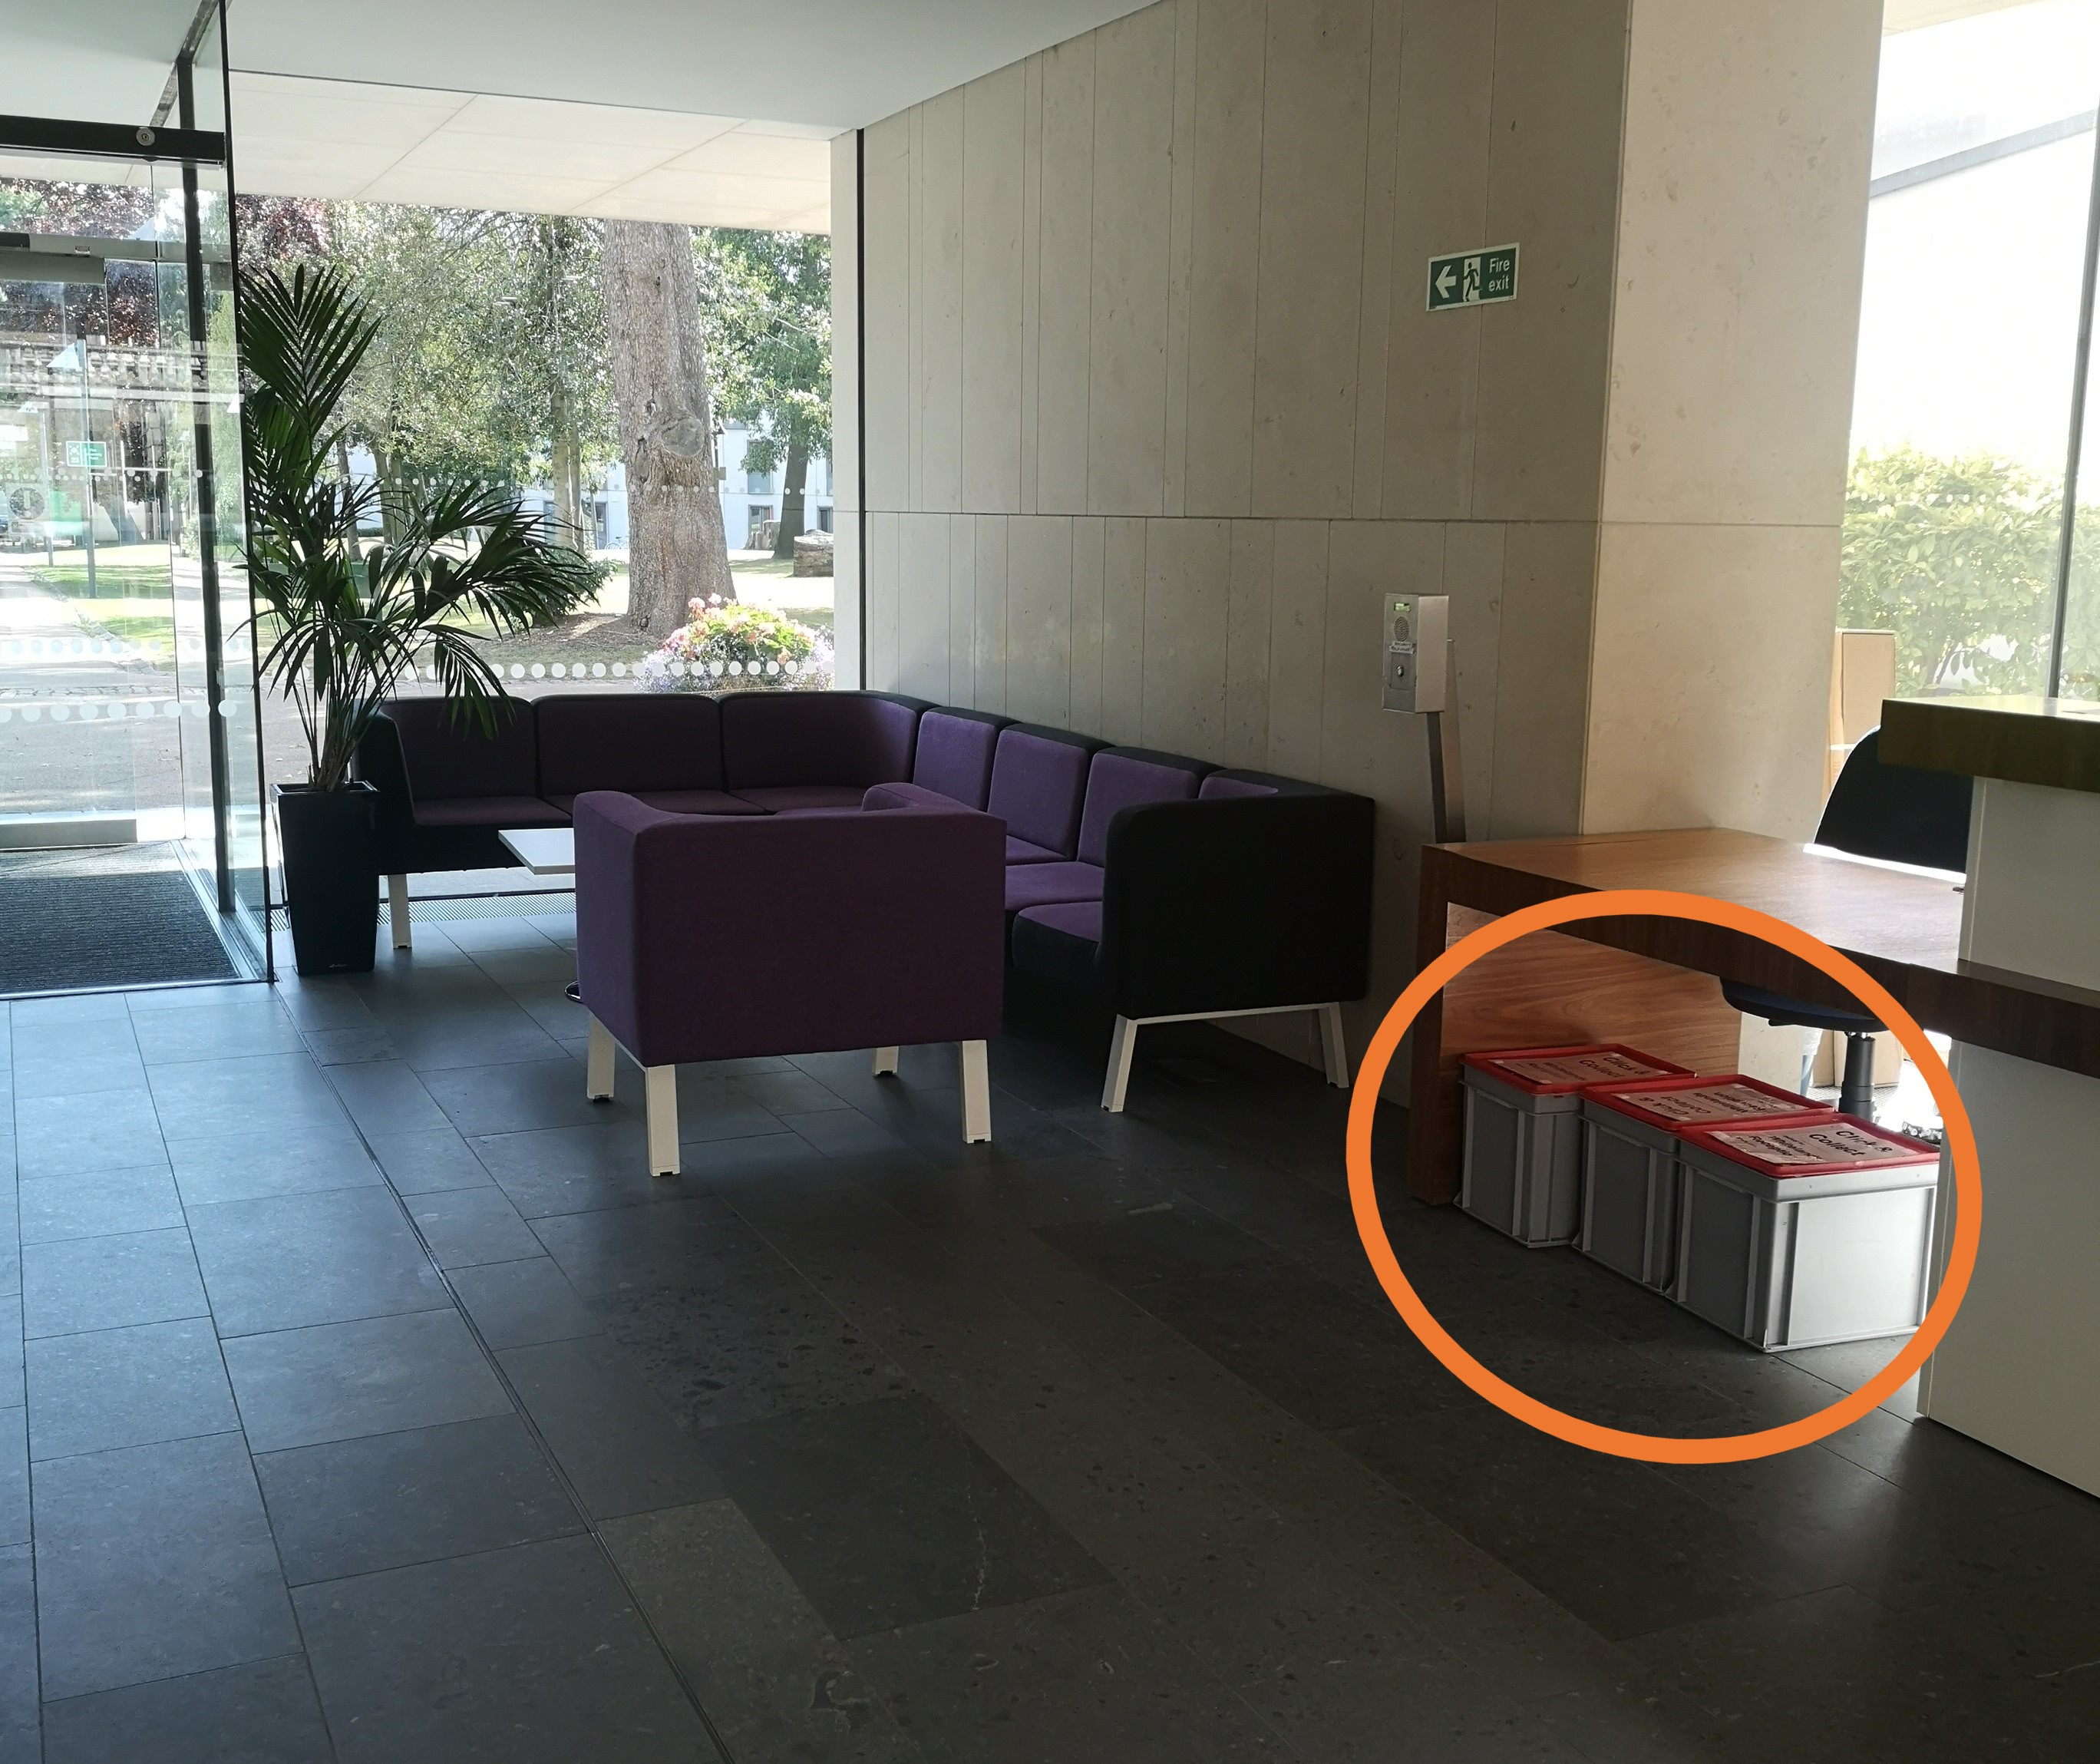 Click and Collect collection point located at the end of the reception desk closest to the entrance.